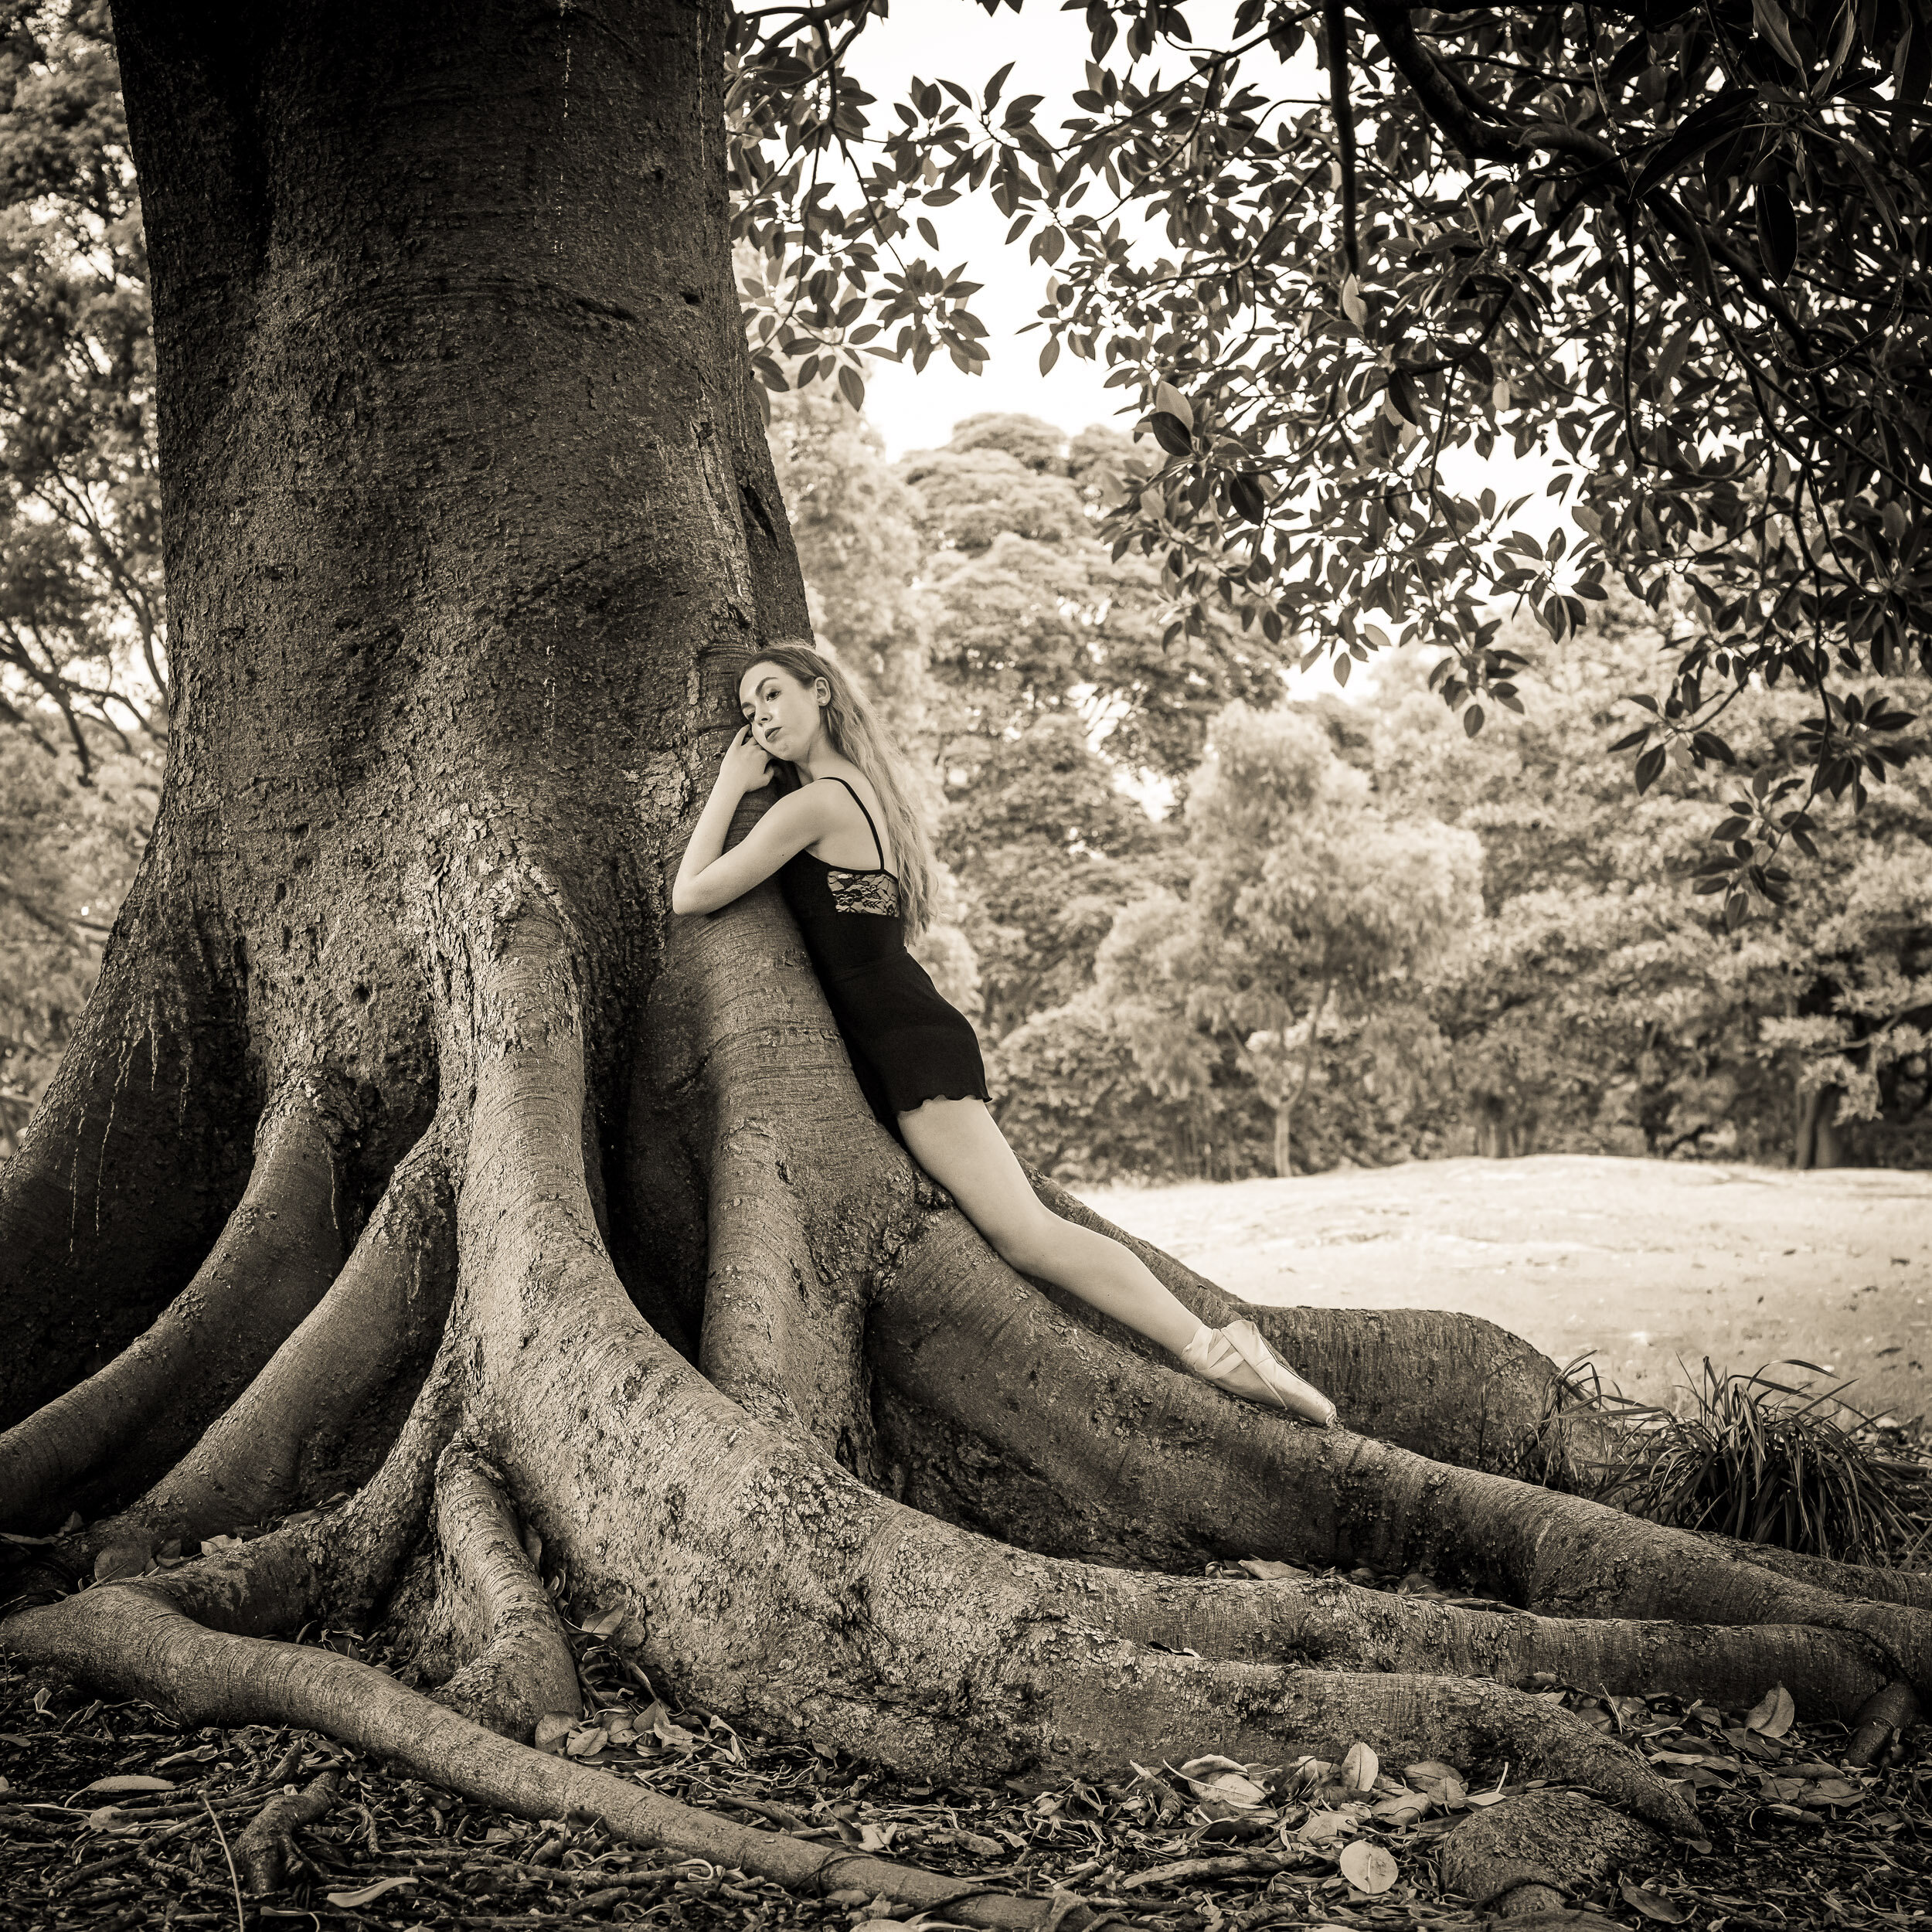 Dancers and Trees Series from our forthcoming book 'Our Love Affair with Trees' - Georgia and Morton Bay Fig. We are exploring our esoteric emotional response to trees and our deep physiological dependence on them for our survival. Playing with feelings, impressions and searching for meaning and emotions. Trees are connected with us spiritually, physically and emotionally.